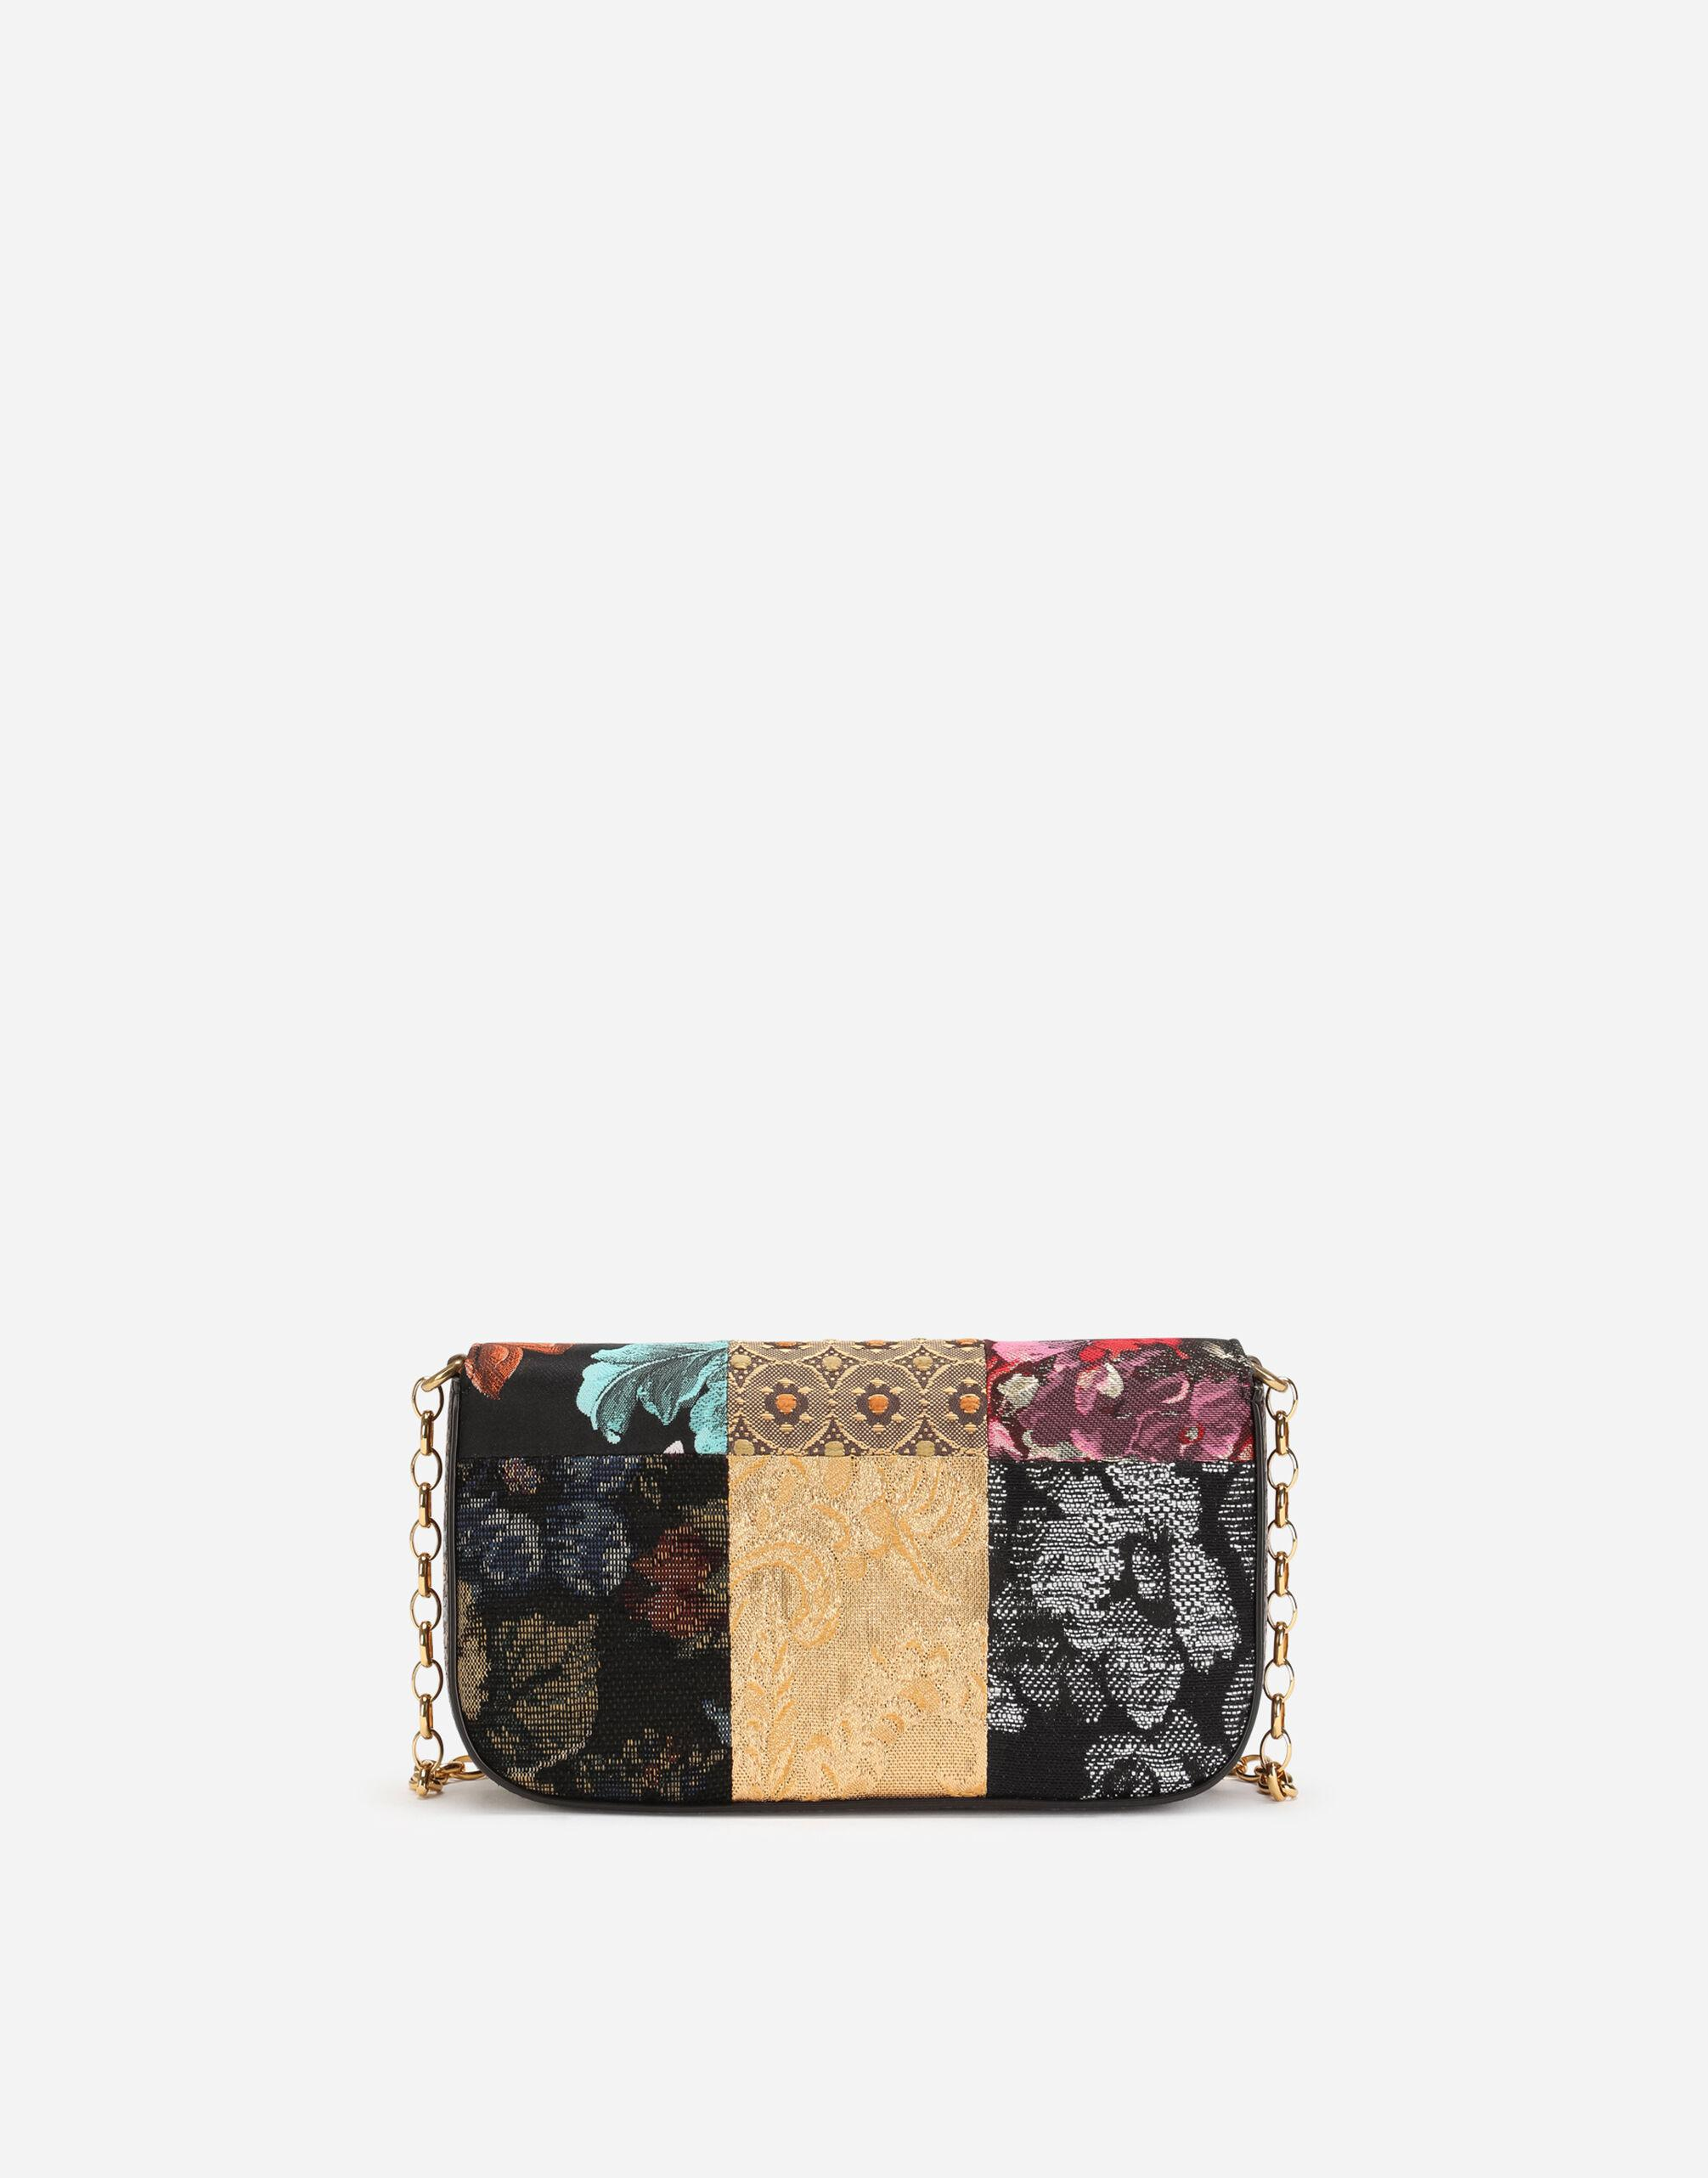 DG Girls clutch in patchwork fabric and ayers 2